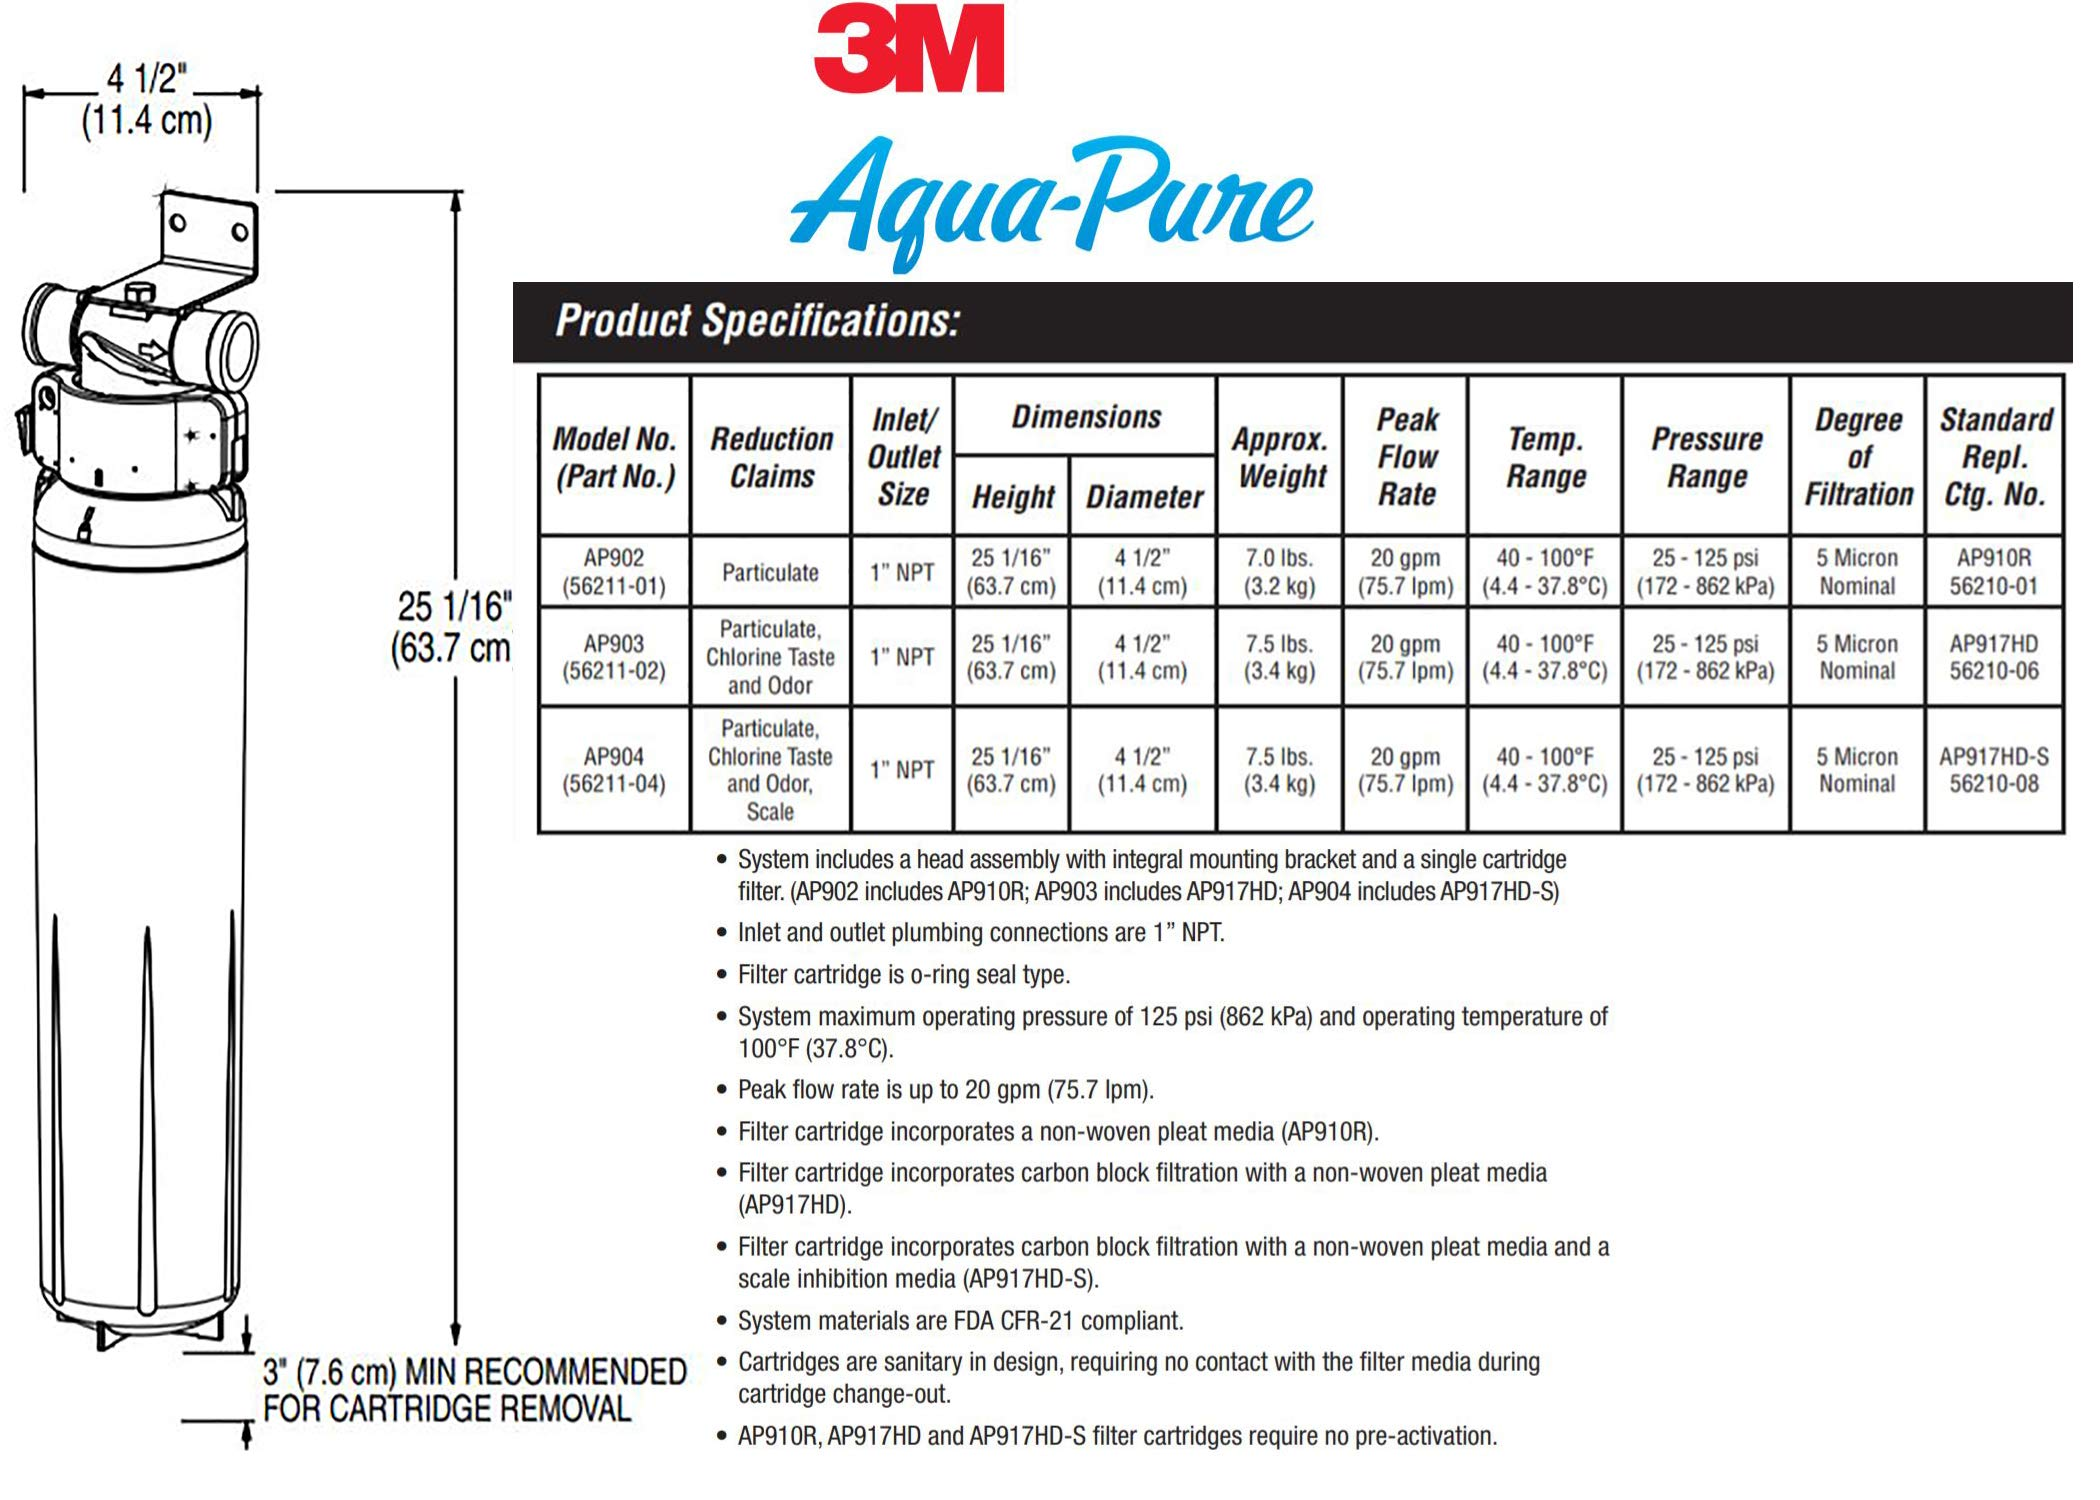 3M Aqua-Pure Whole House Replacement Water Filter - Model AP910R by 3M Aqua-Pure